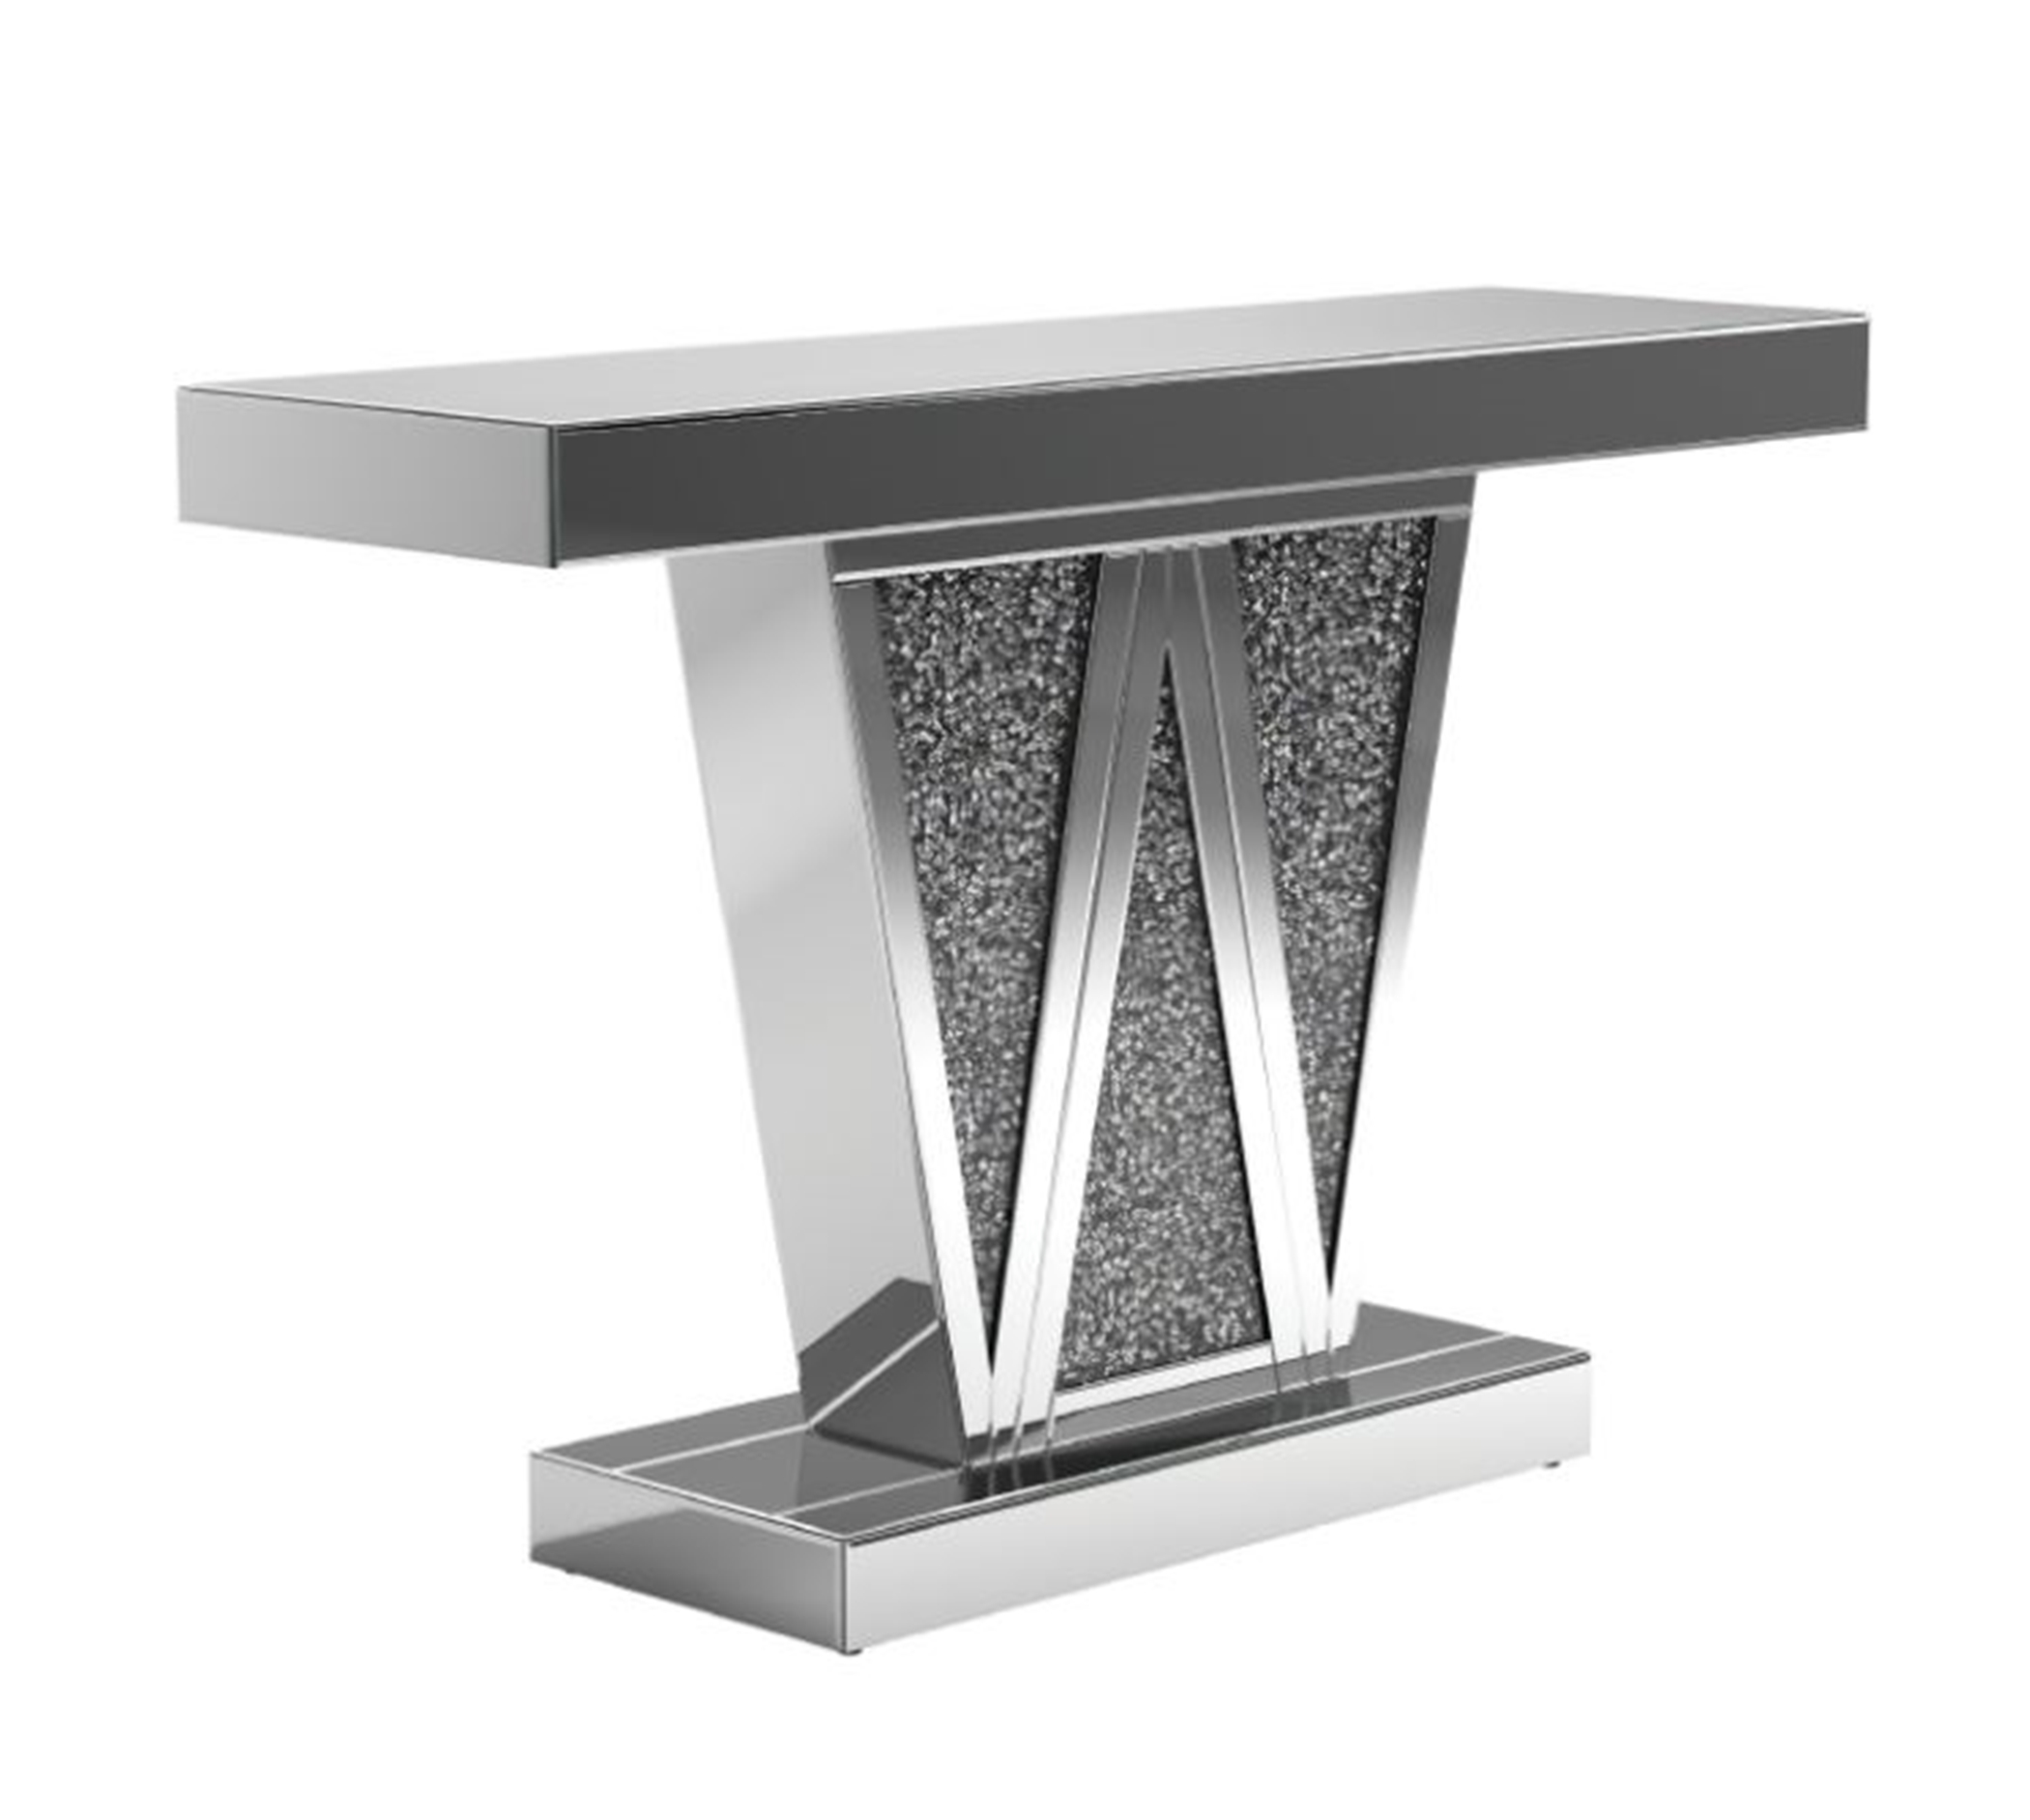 951786 - Console Table